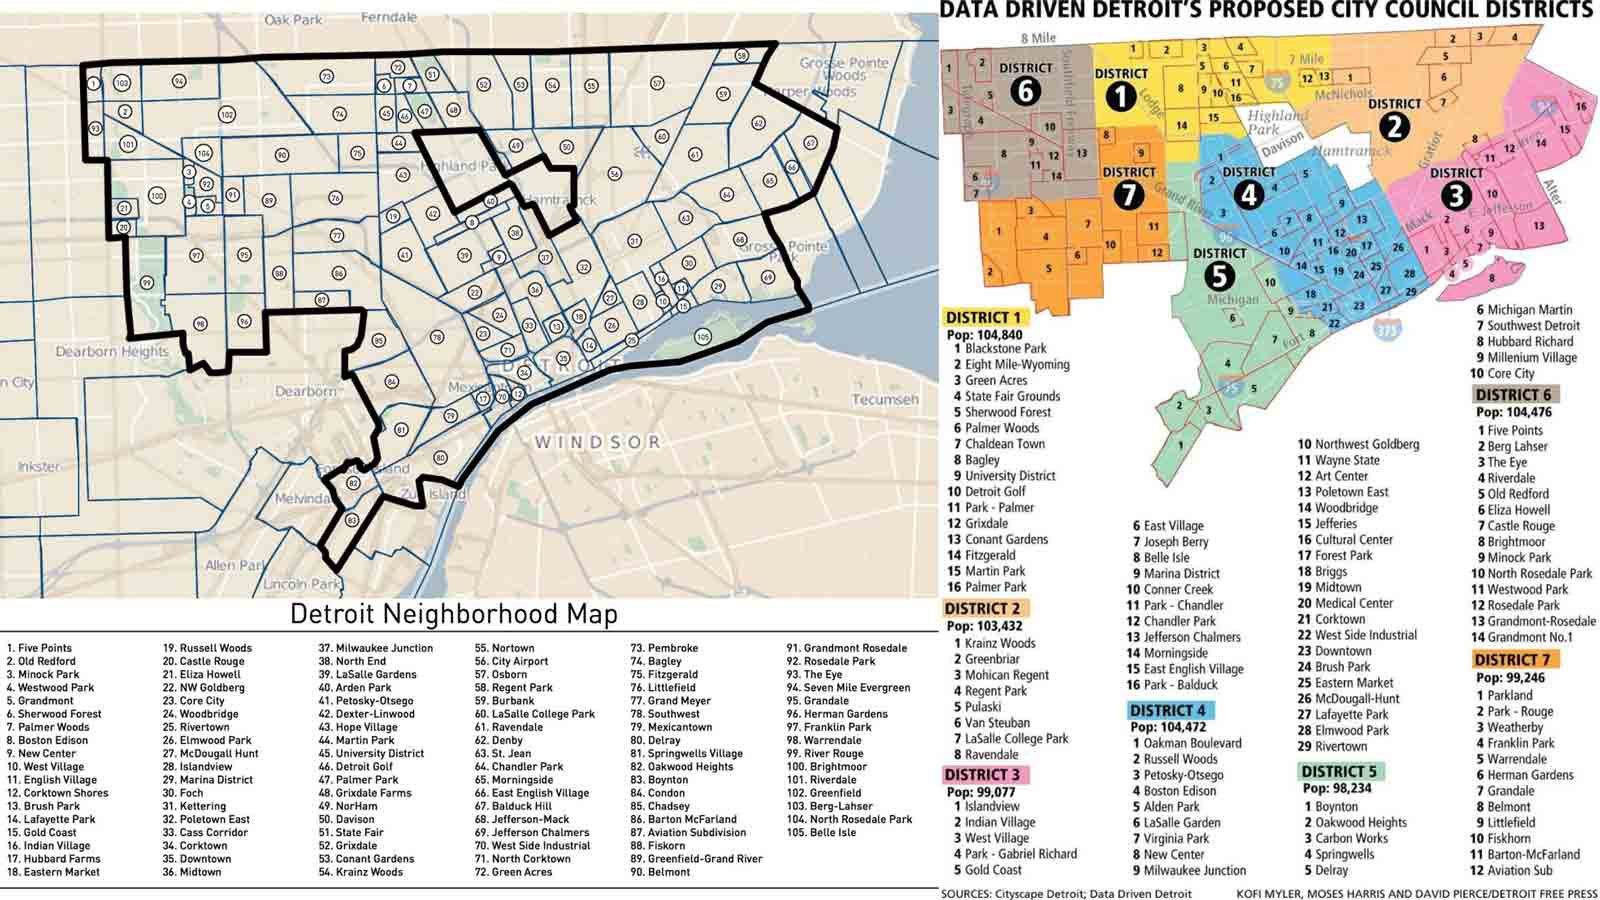 Examples of Detroit neighborhood maps I found online that were hard to read.